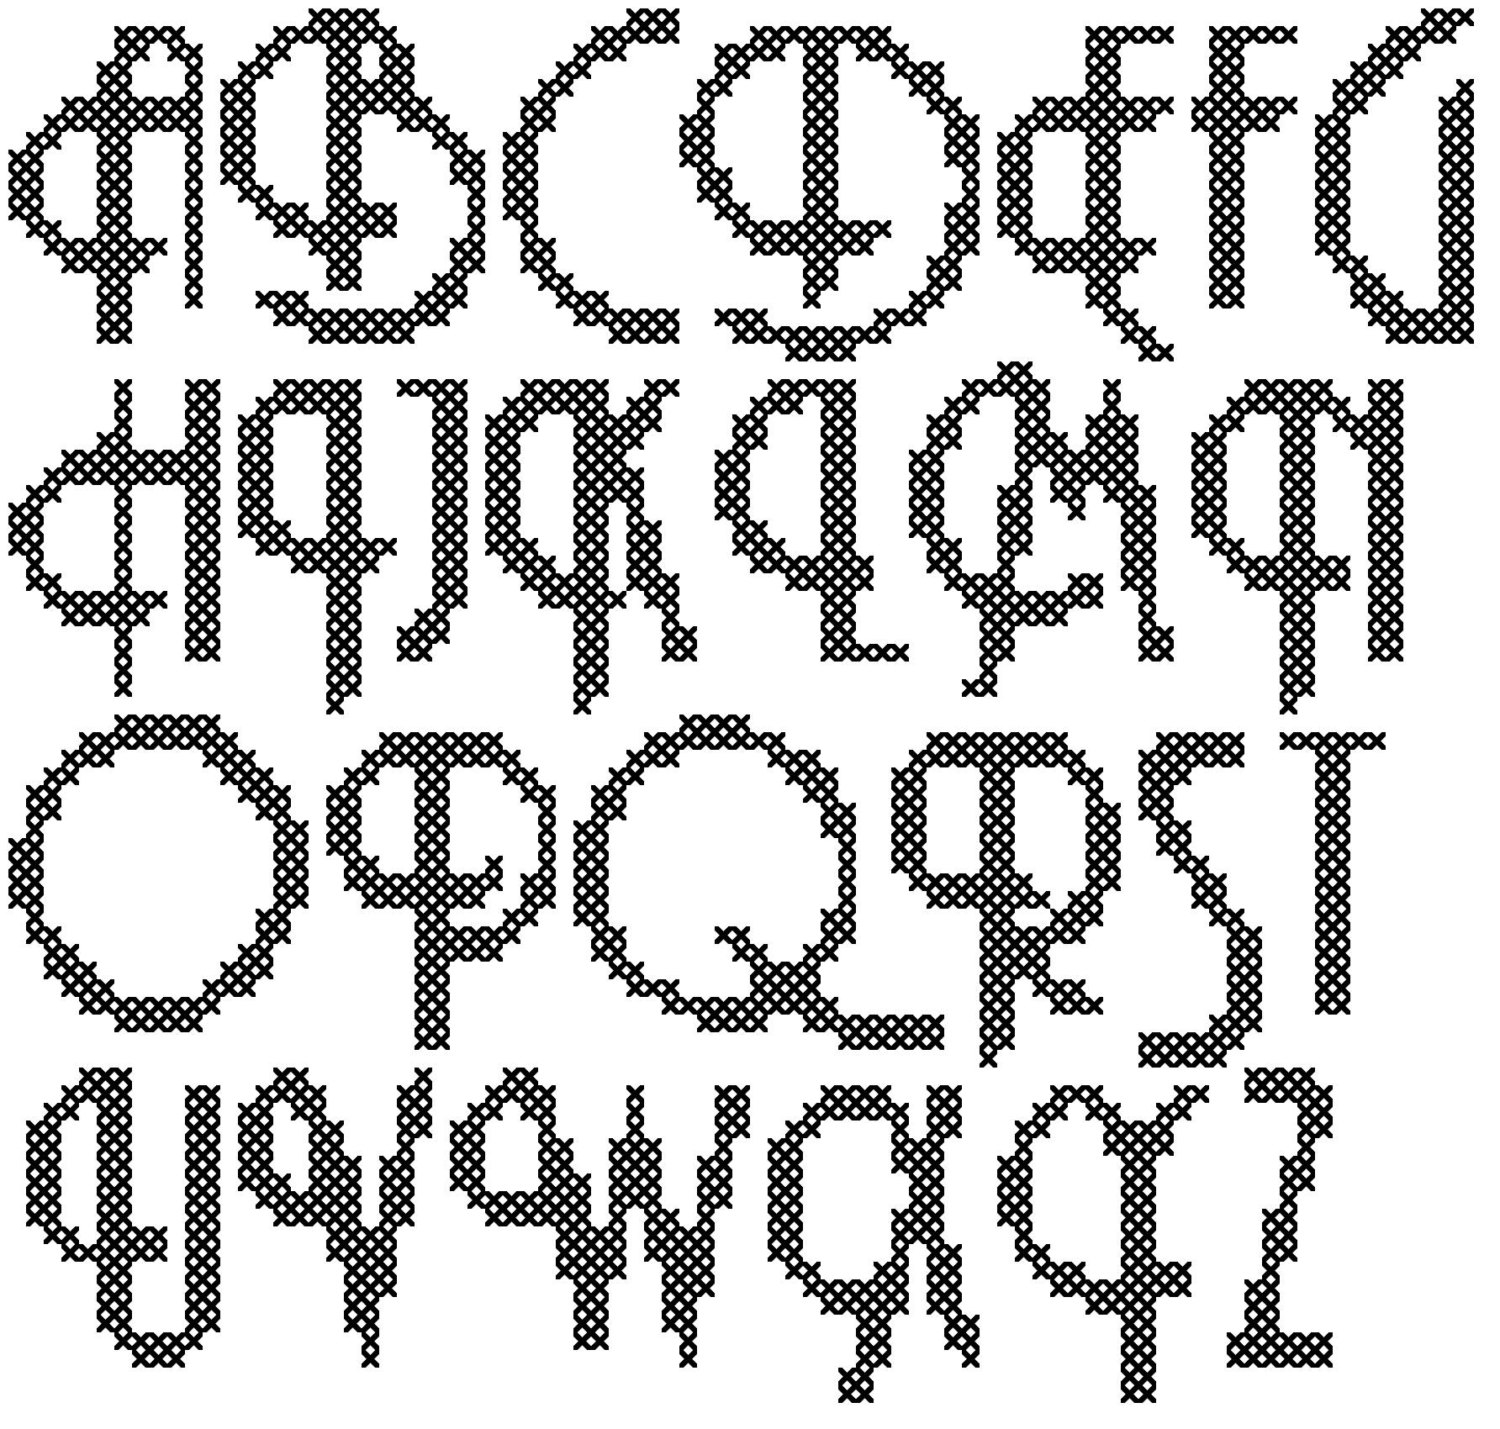 Embroidery Alphabet Patterns Embroidery Alphabet Patterns For Cross Stitch